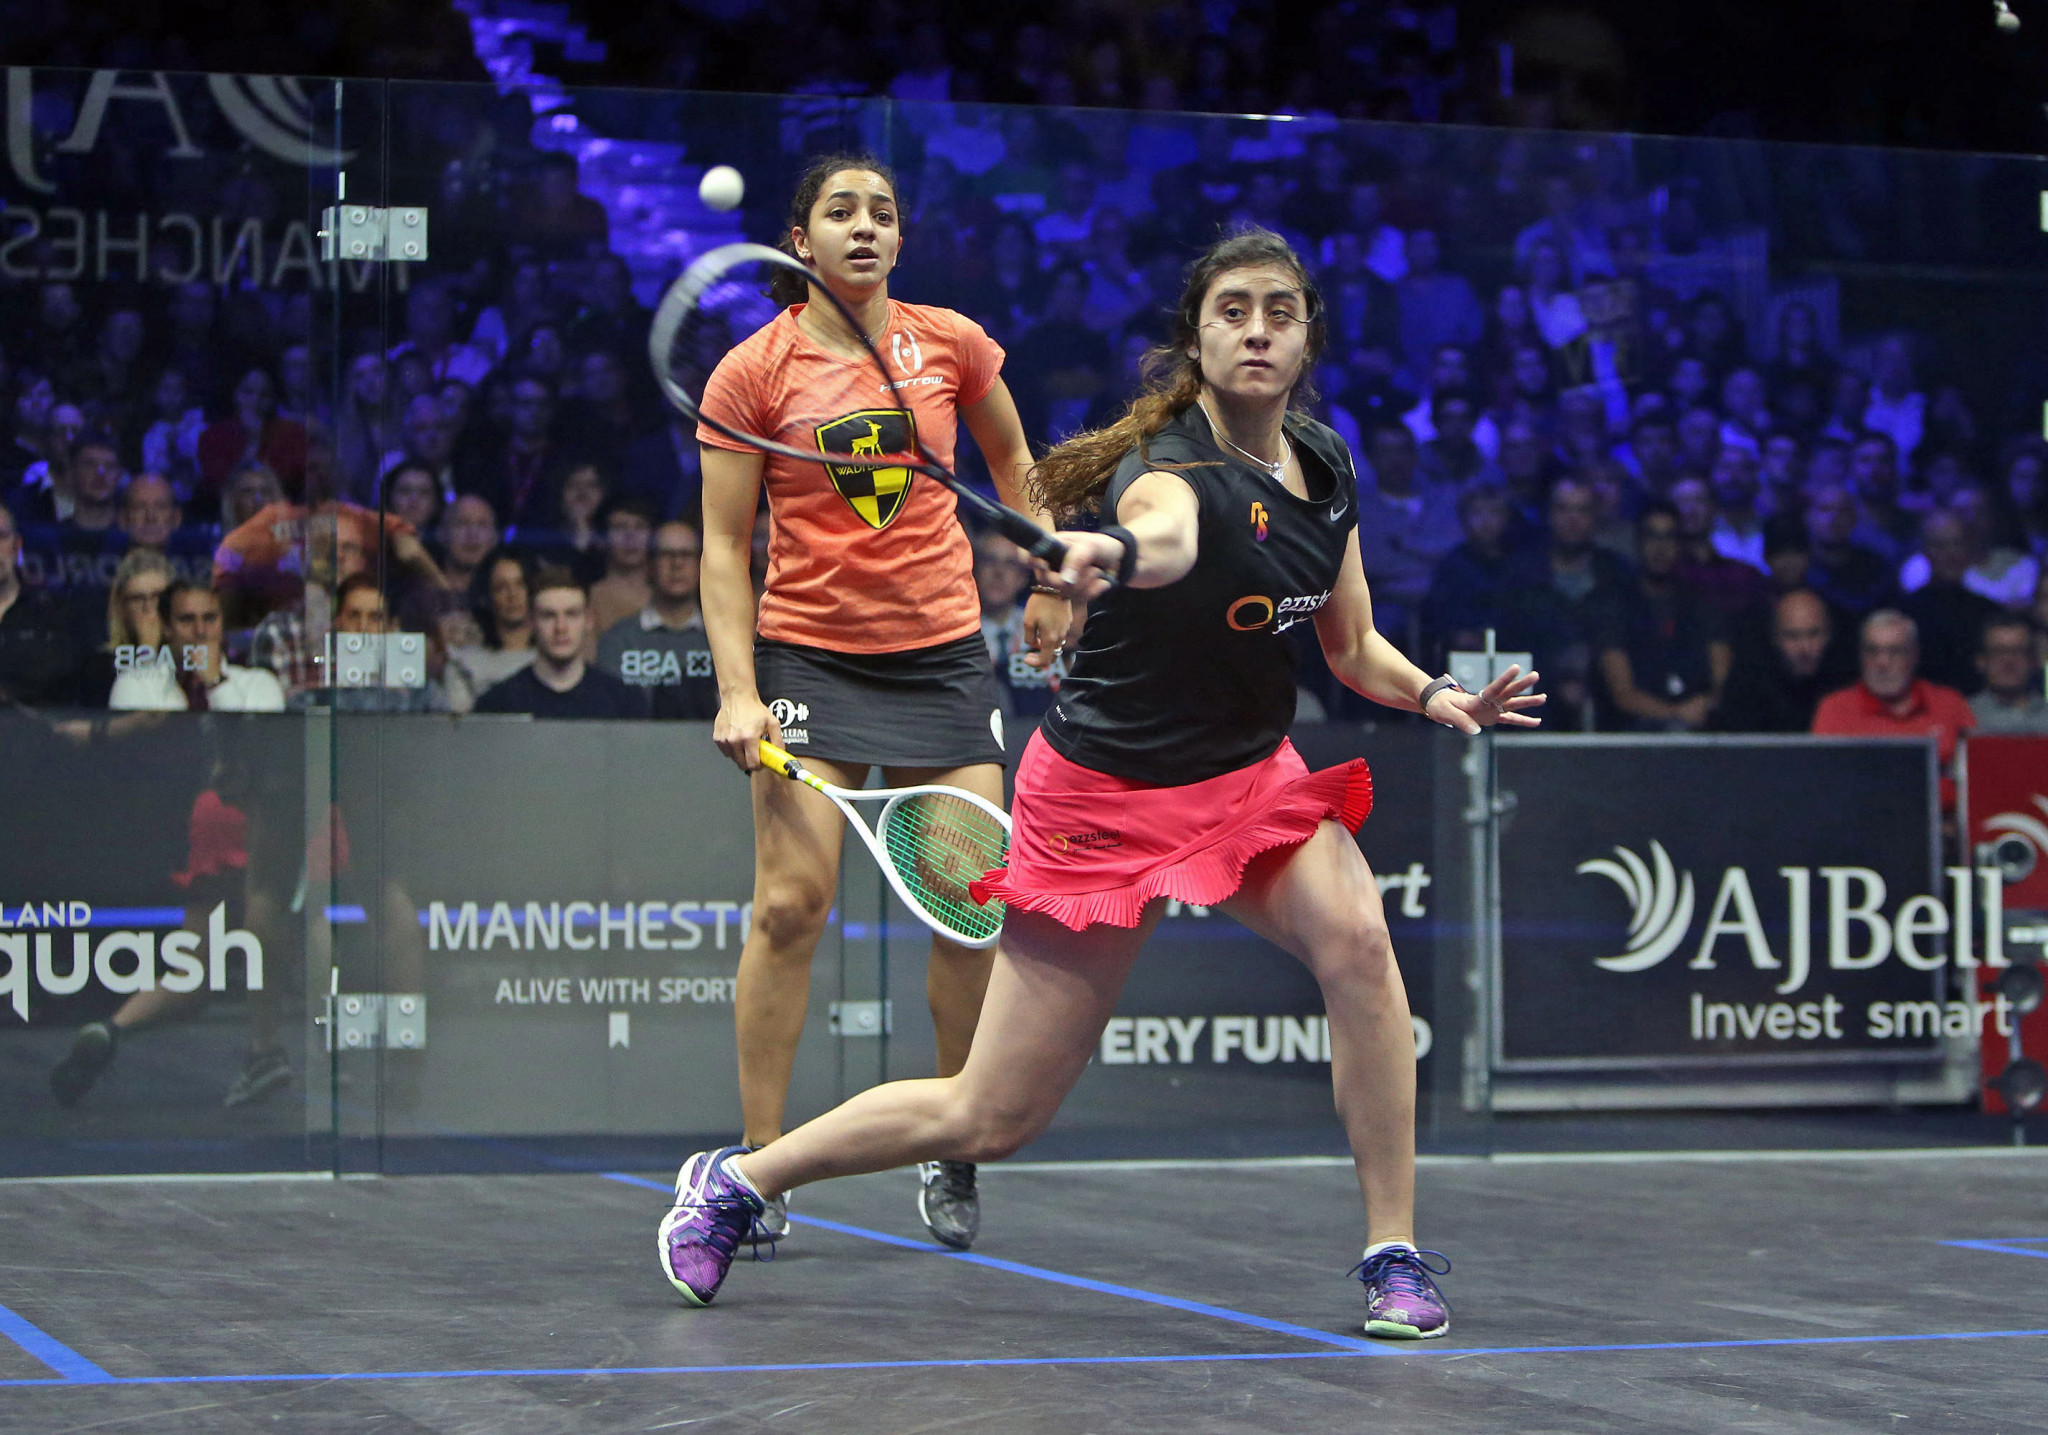 PSA to introduce first $1 million squash prize as gender gap in pay narrows